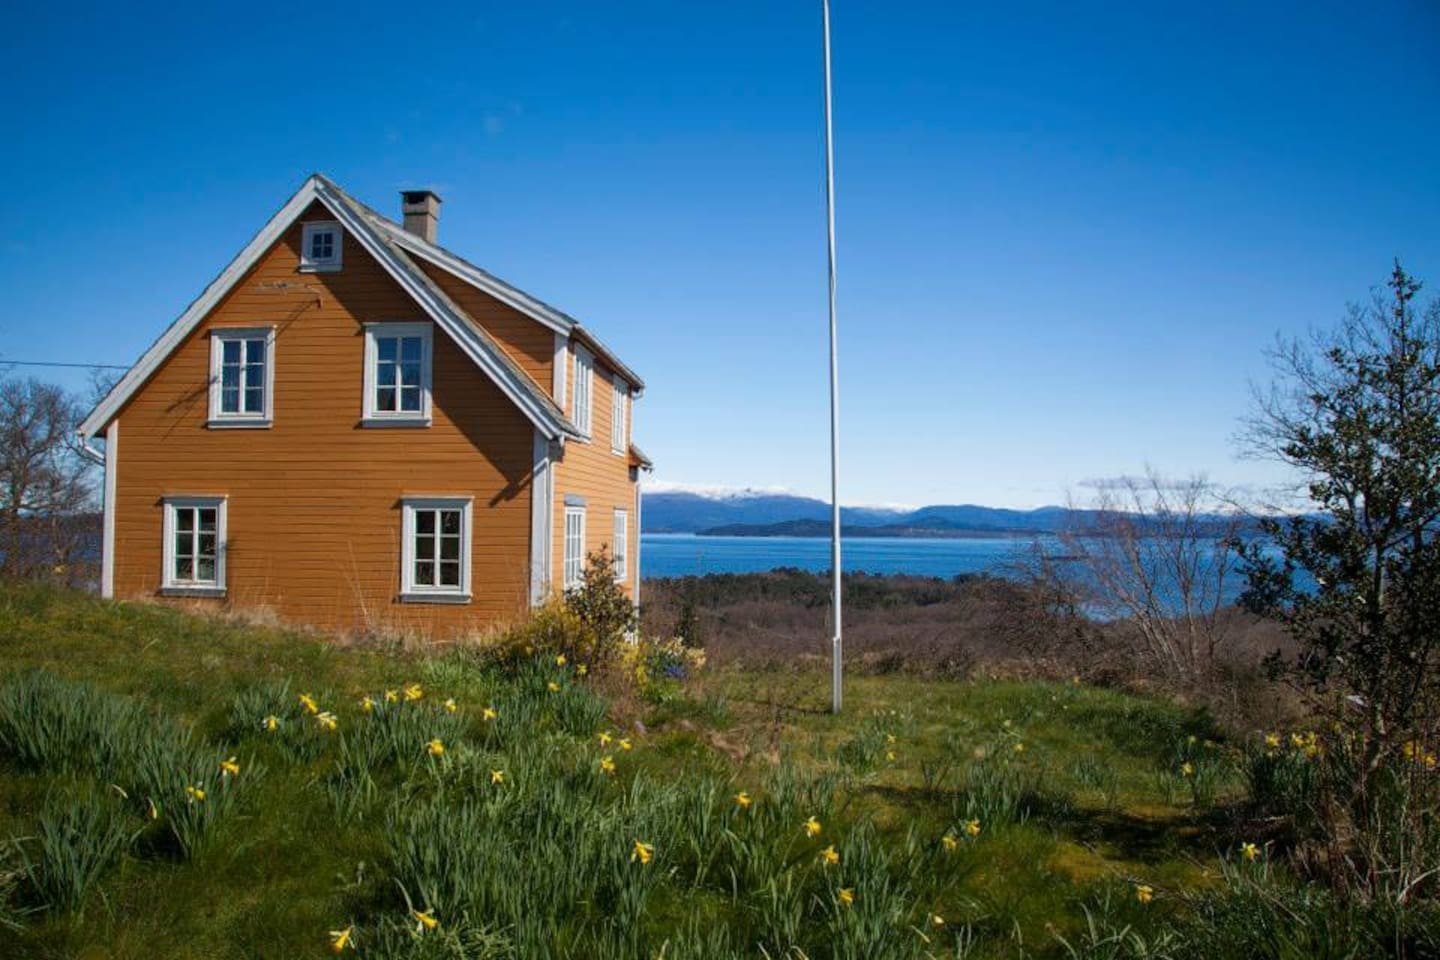 The house was built in 1937 and is very nicely located with view towards the Hardanger fjord.